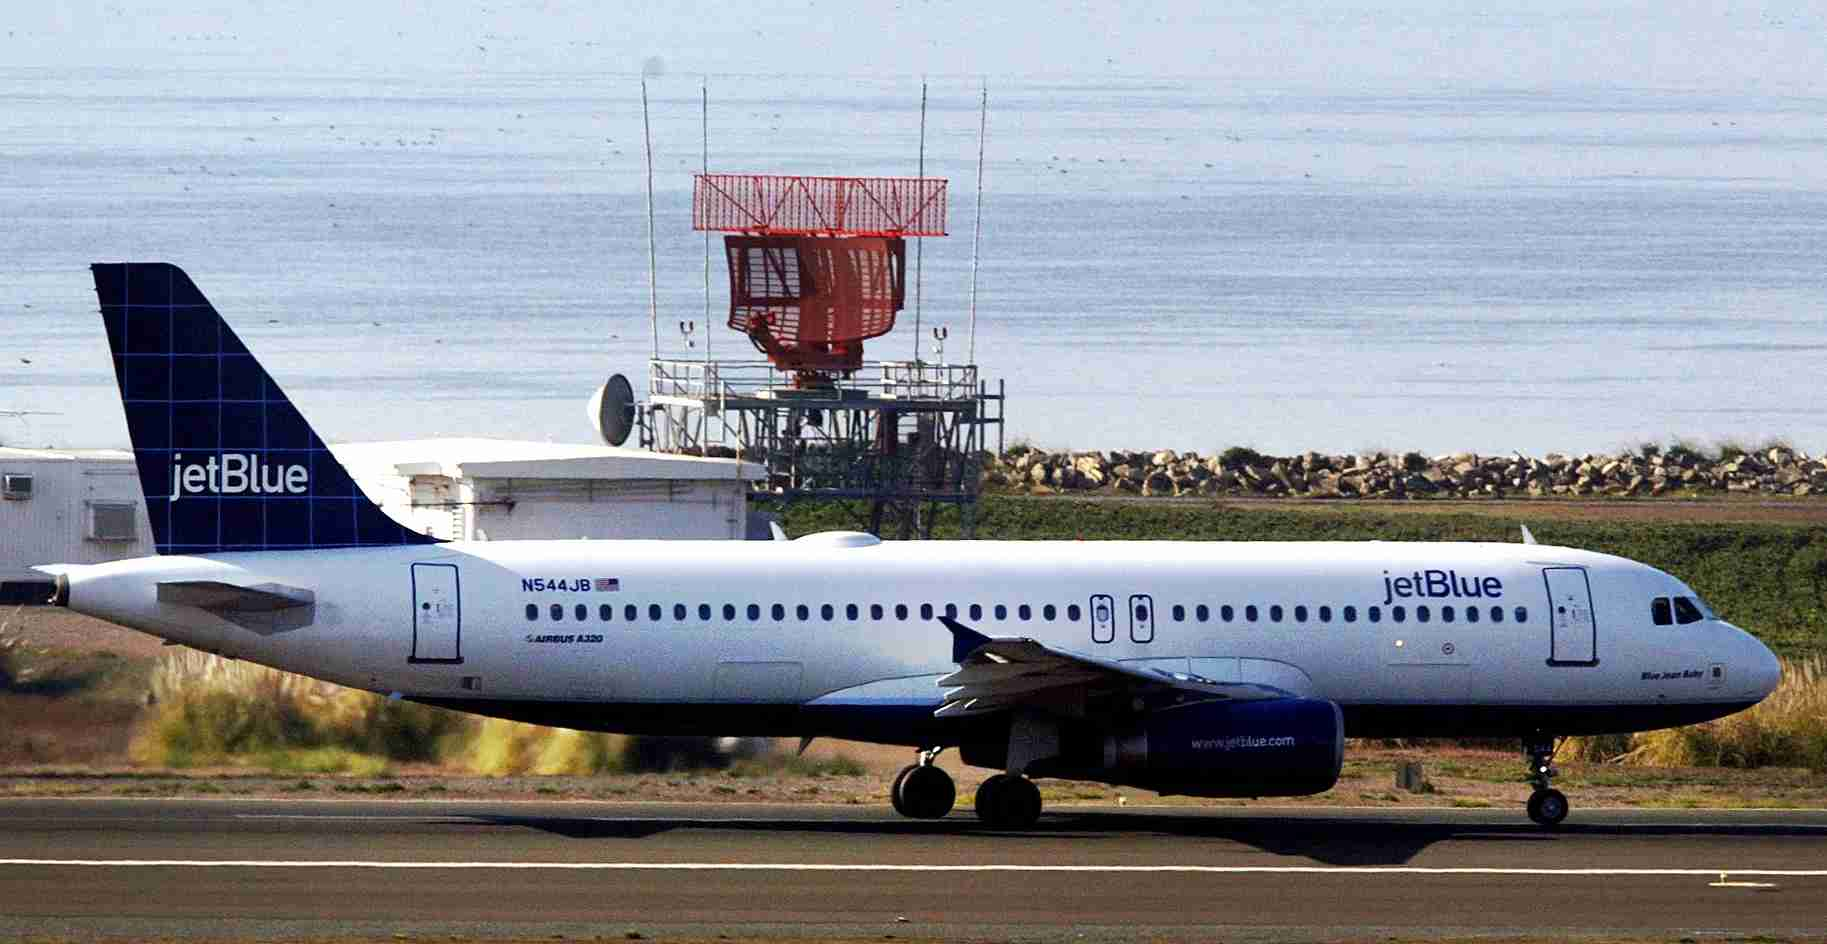 A JetBlue plane taxis at Oakland International Airport on Jan. 29, 2007.(Photo by Jeff Carlick/Bloomberg via Getty Images)